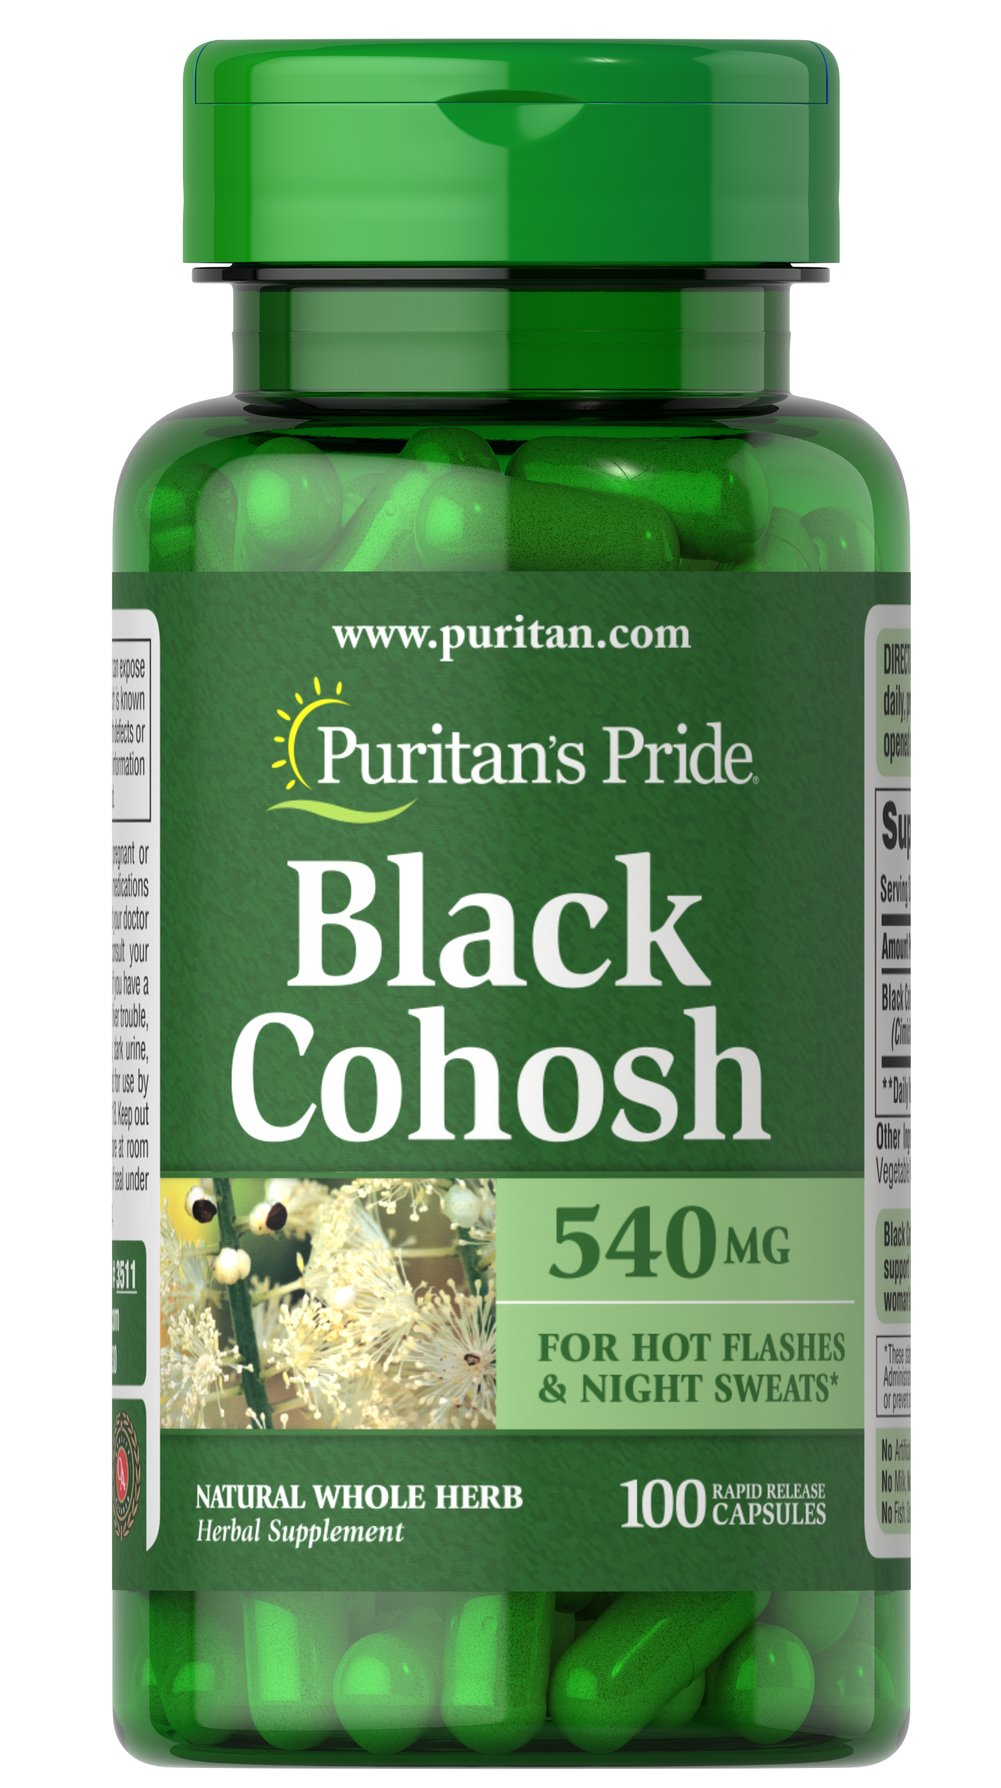 Black Cohosh 540 mg  100 Capsules 540 mg $15.67